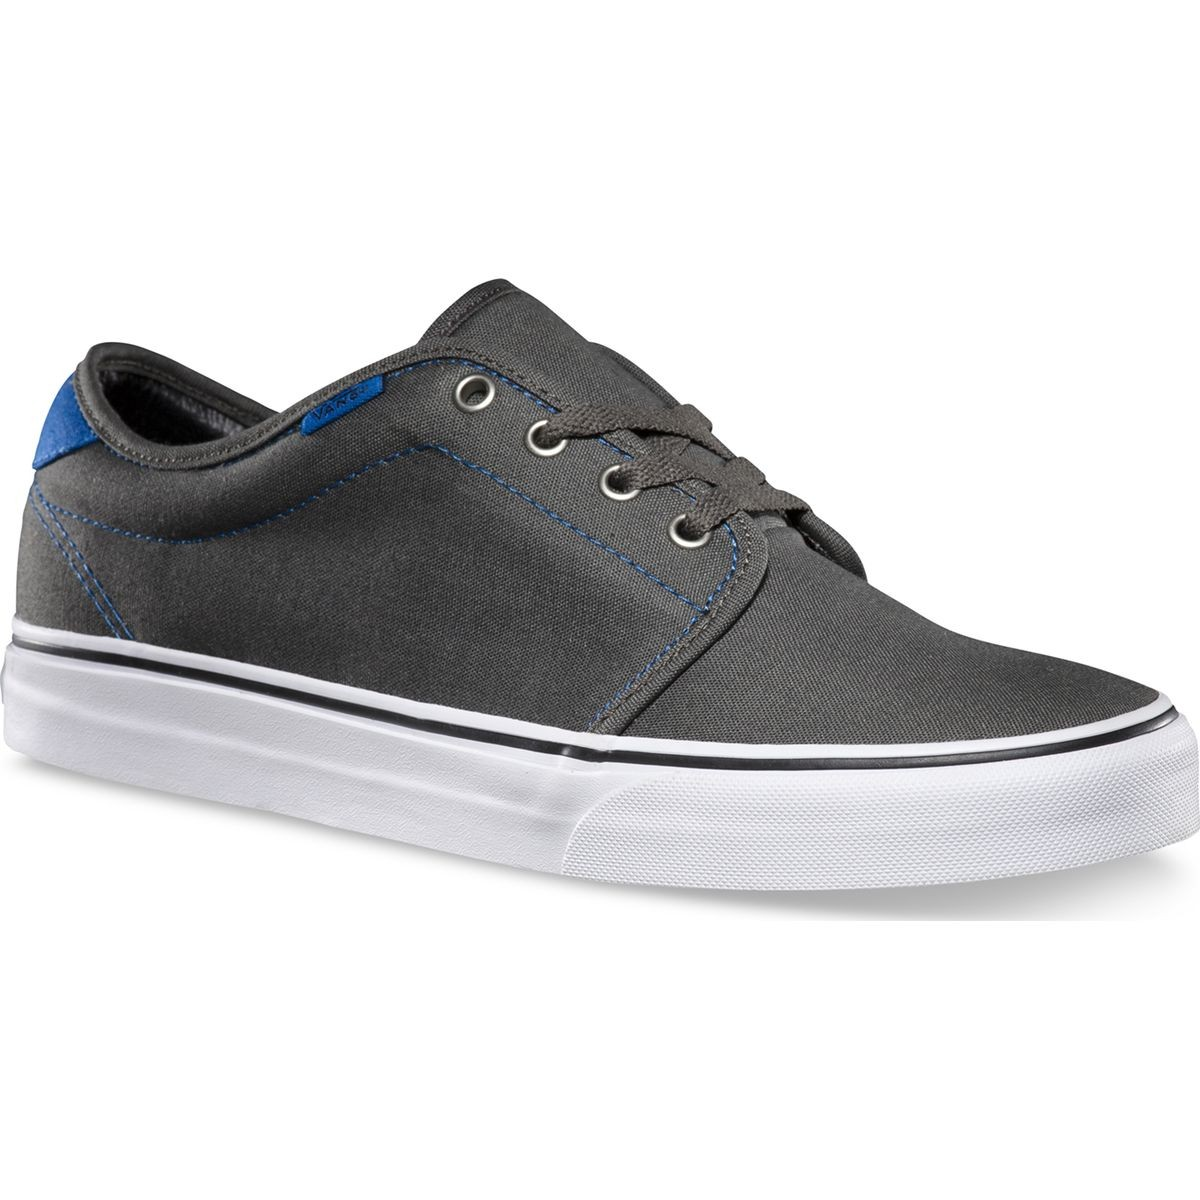 Vans 159 Vulcanized Shoes - Charcoal / Skydiver